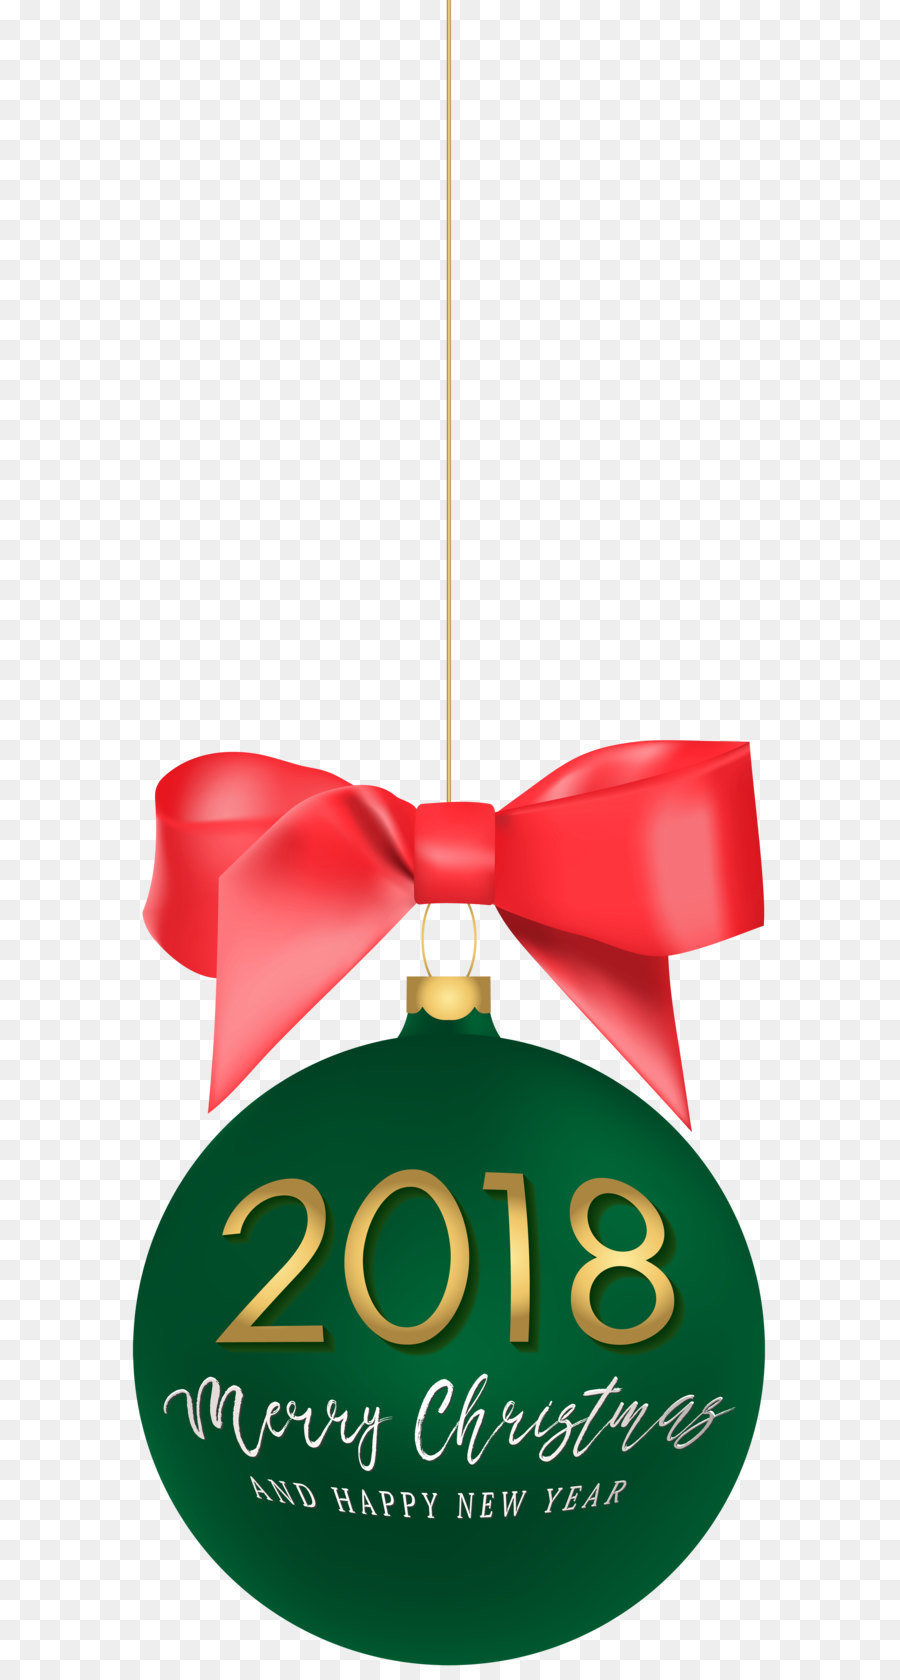 900x1680 2018 Happy New Year Christmas Ball Png Clip Art Image Png Download